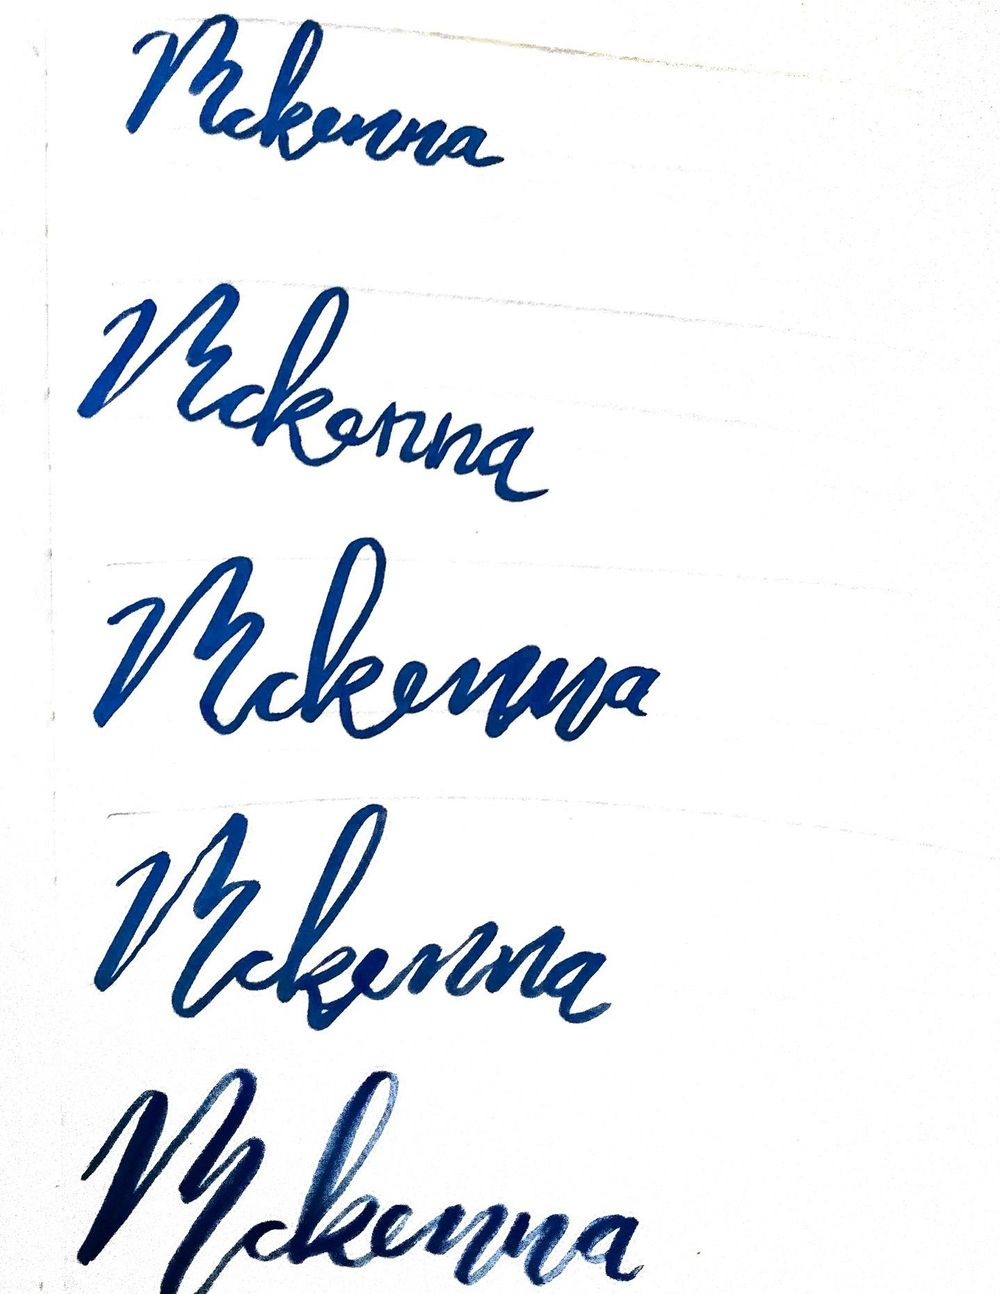 McKenna in bounce lettering - image 3 - student project